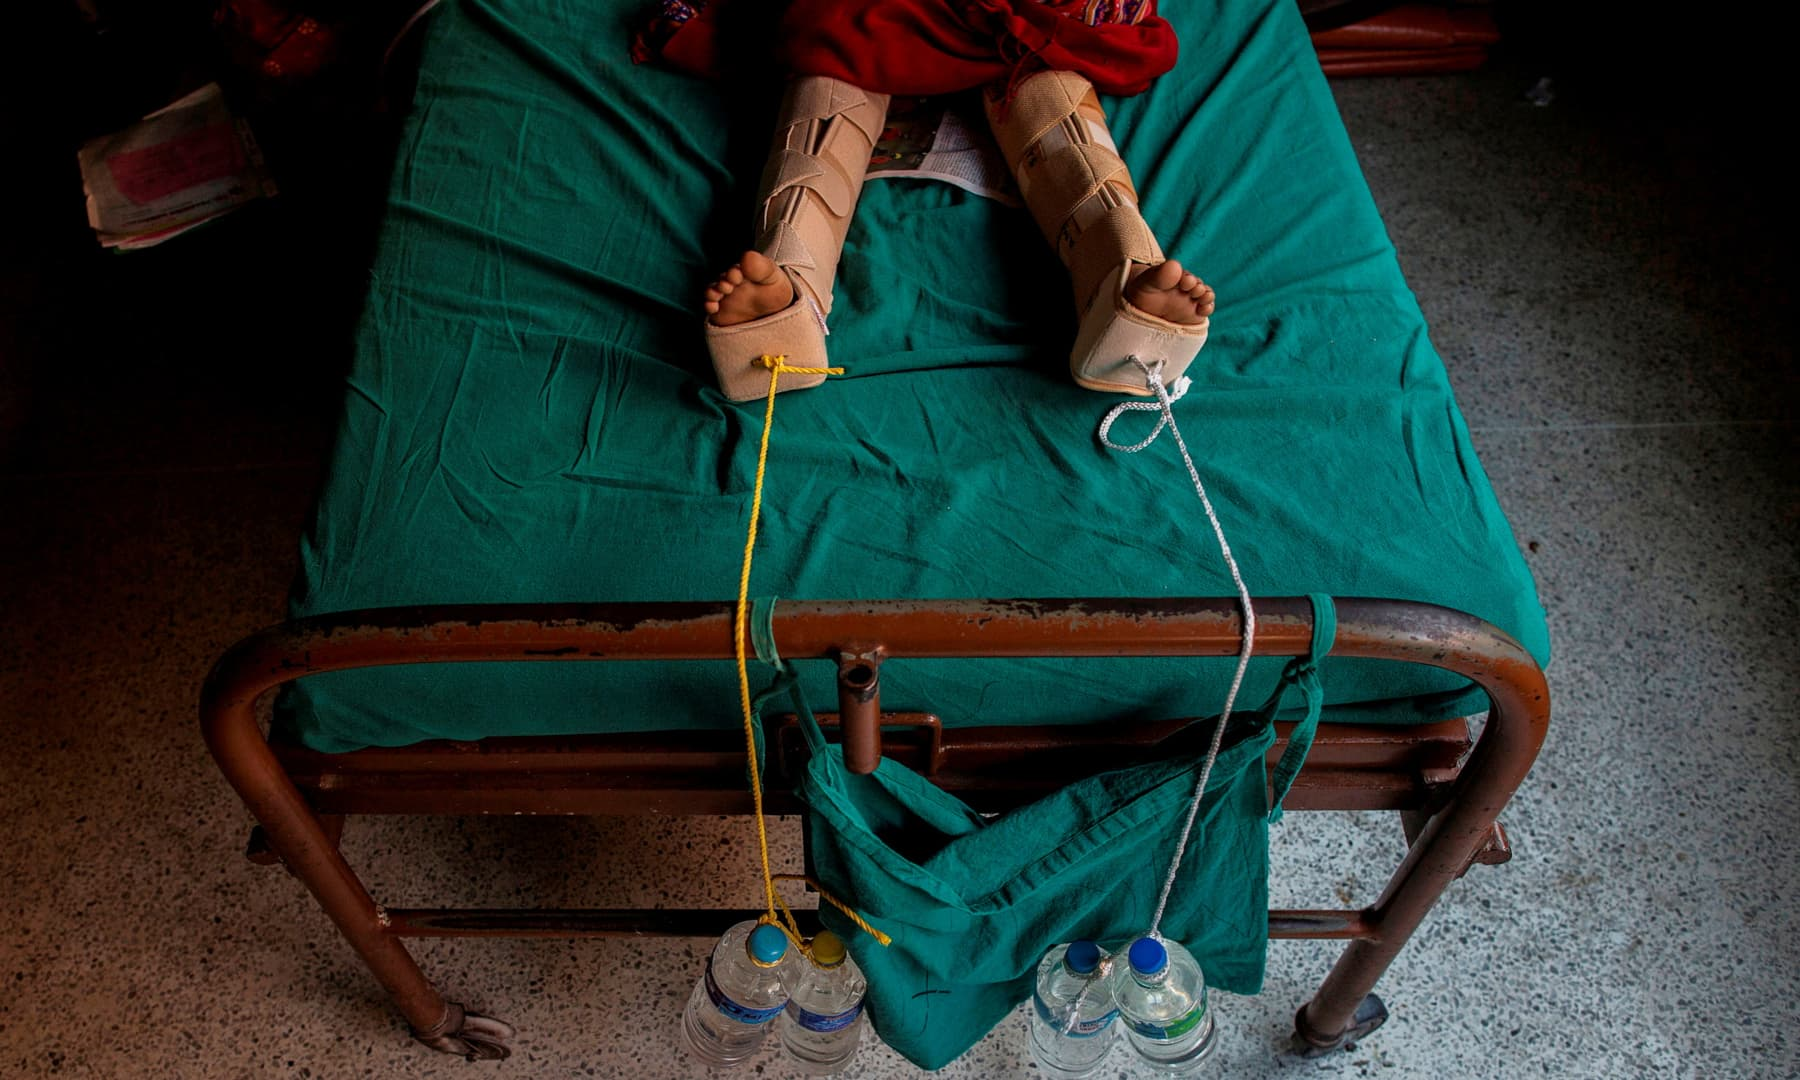 Ropes weighted down with water bottles are used to apply traction to the legs of an injured girl after she fractured them during an earthquake, at a hospital in Kathmandu, Nepal, April 29, 2015. — Reuters/Danish Siddiqui